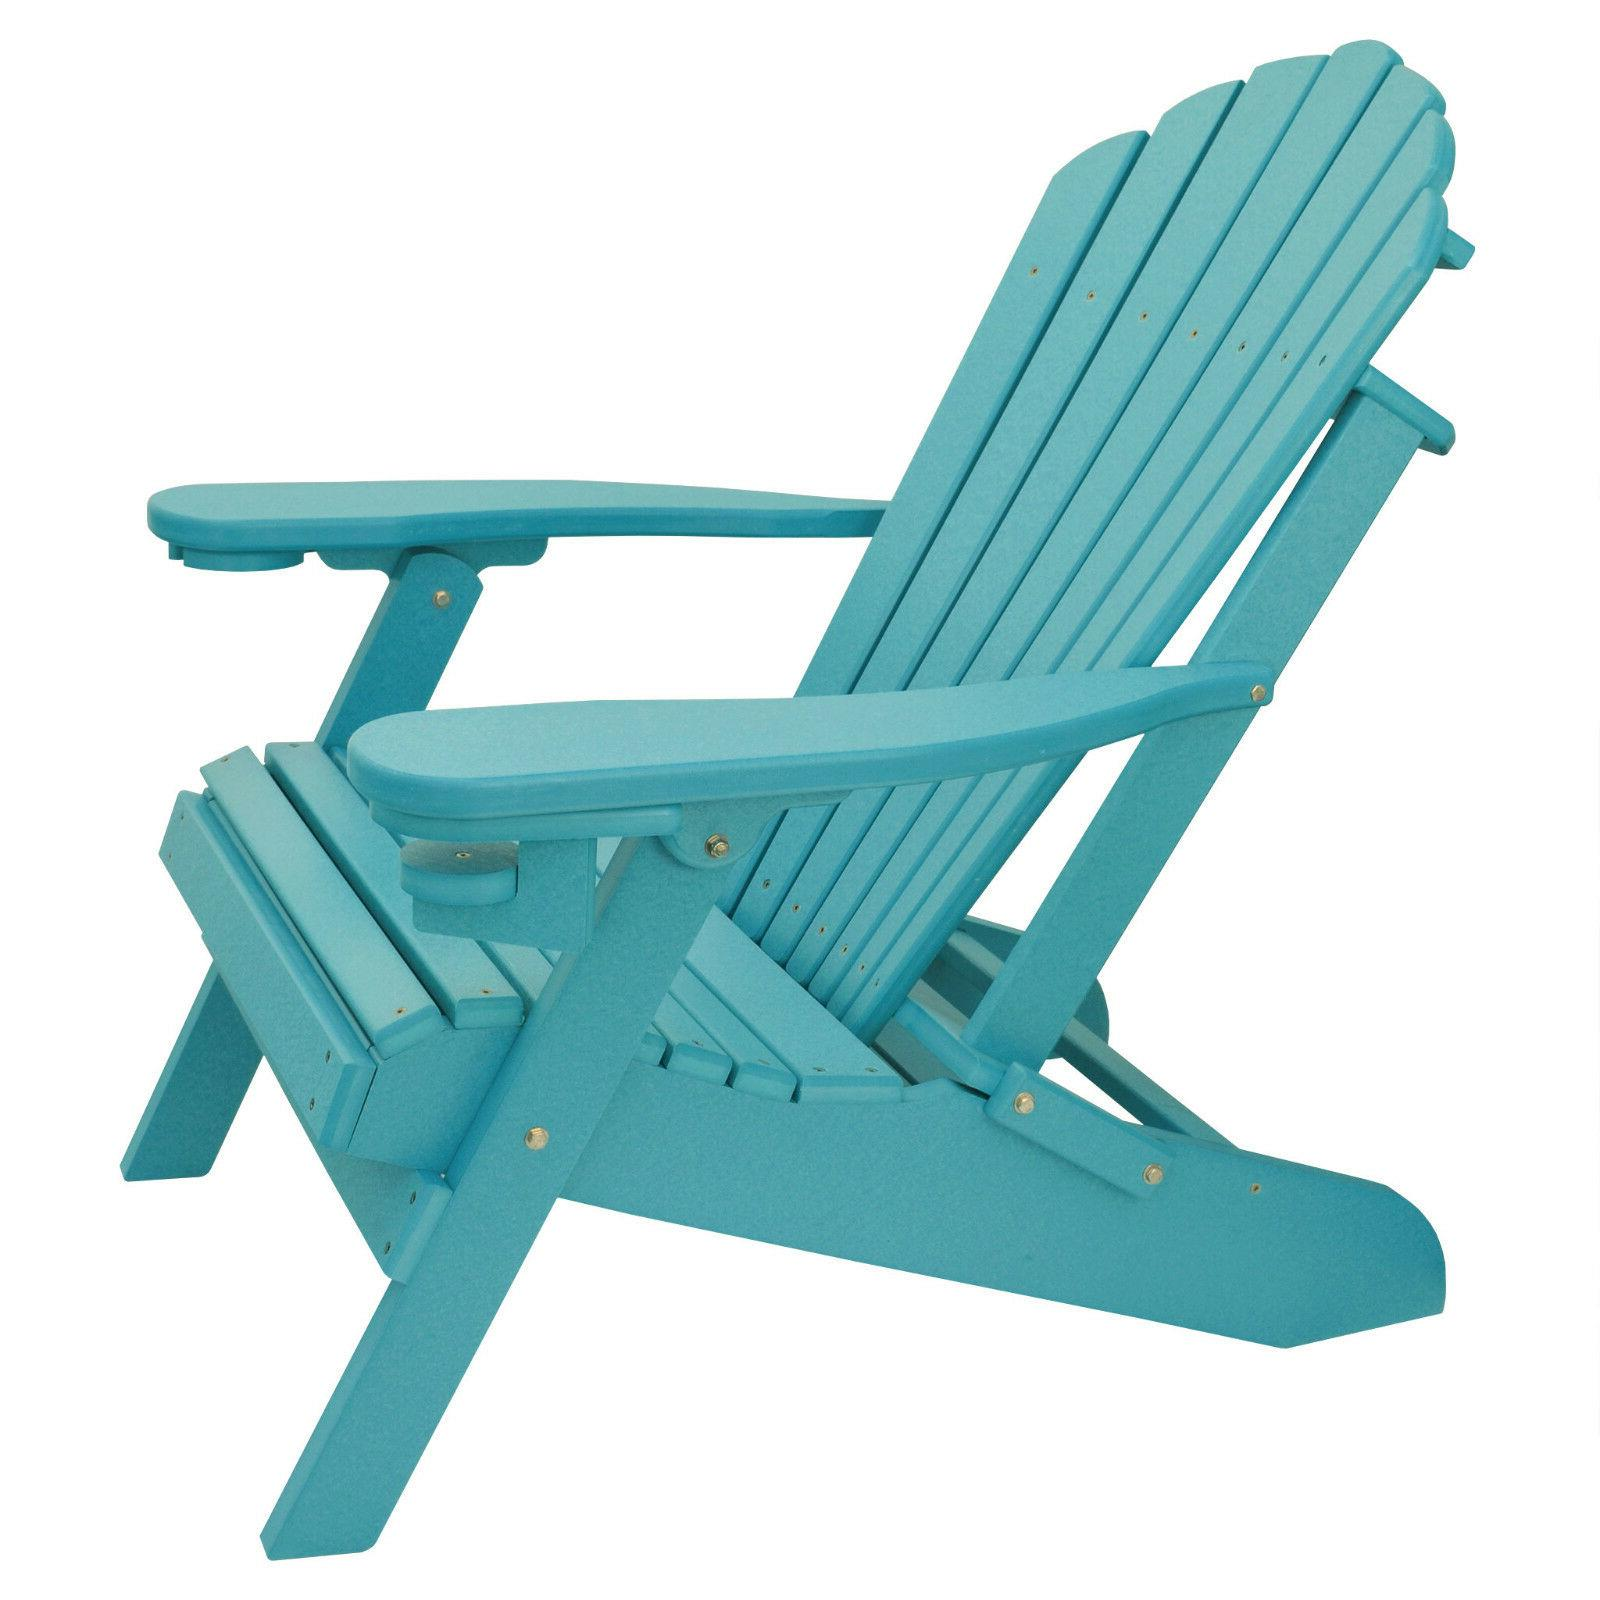 New Deluxe Adirondack Chair Set with Harbor